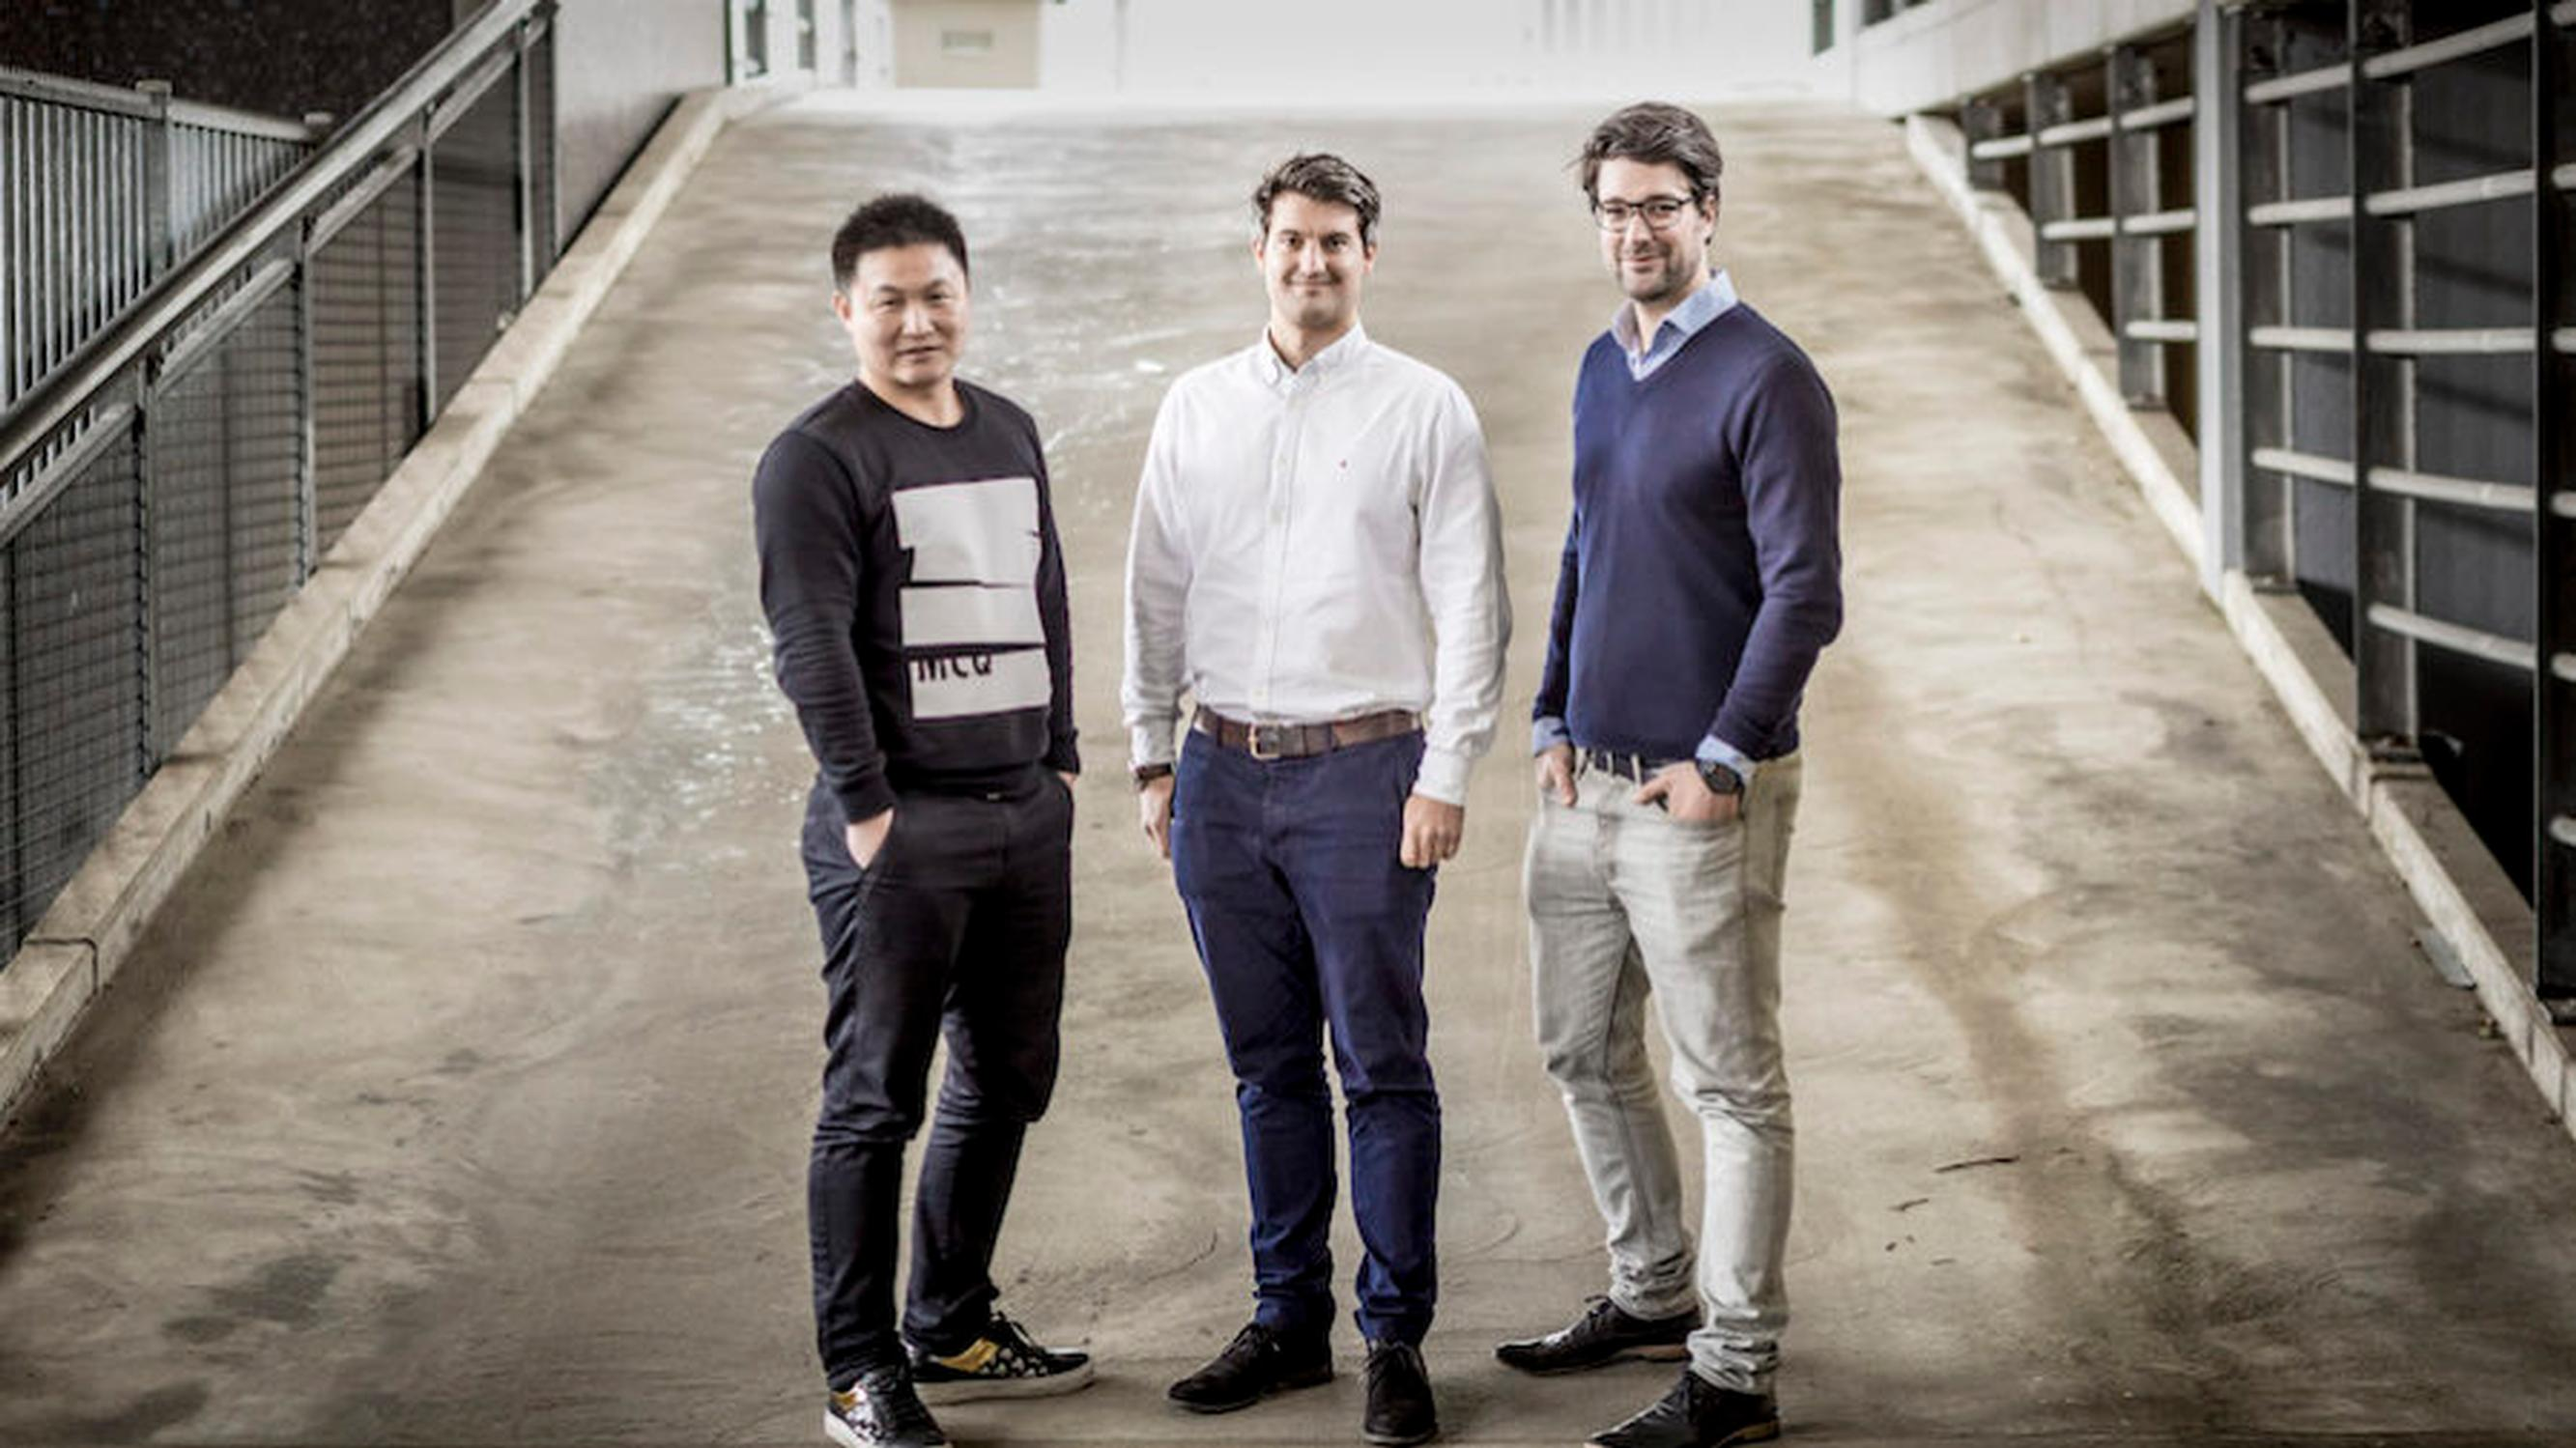 ParkBee raises £4.4m to finance UK growth